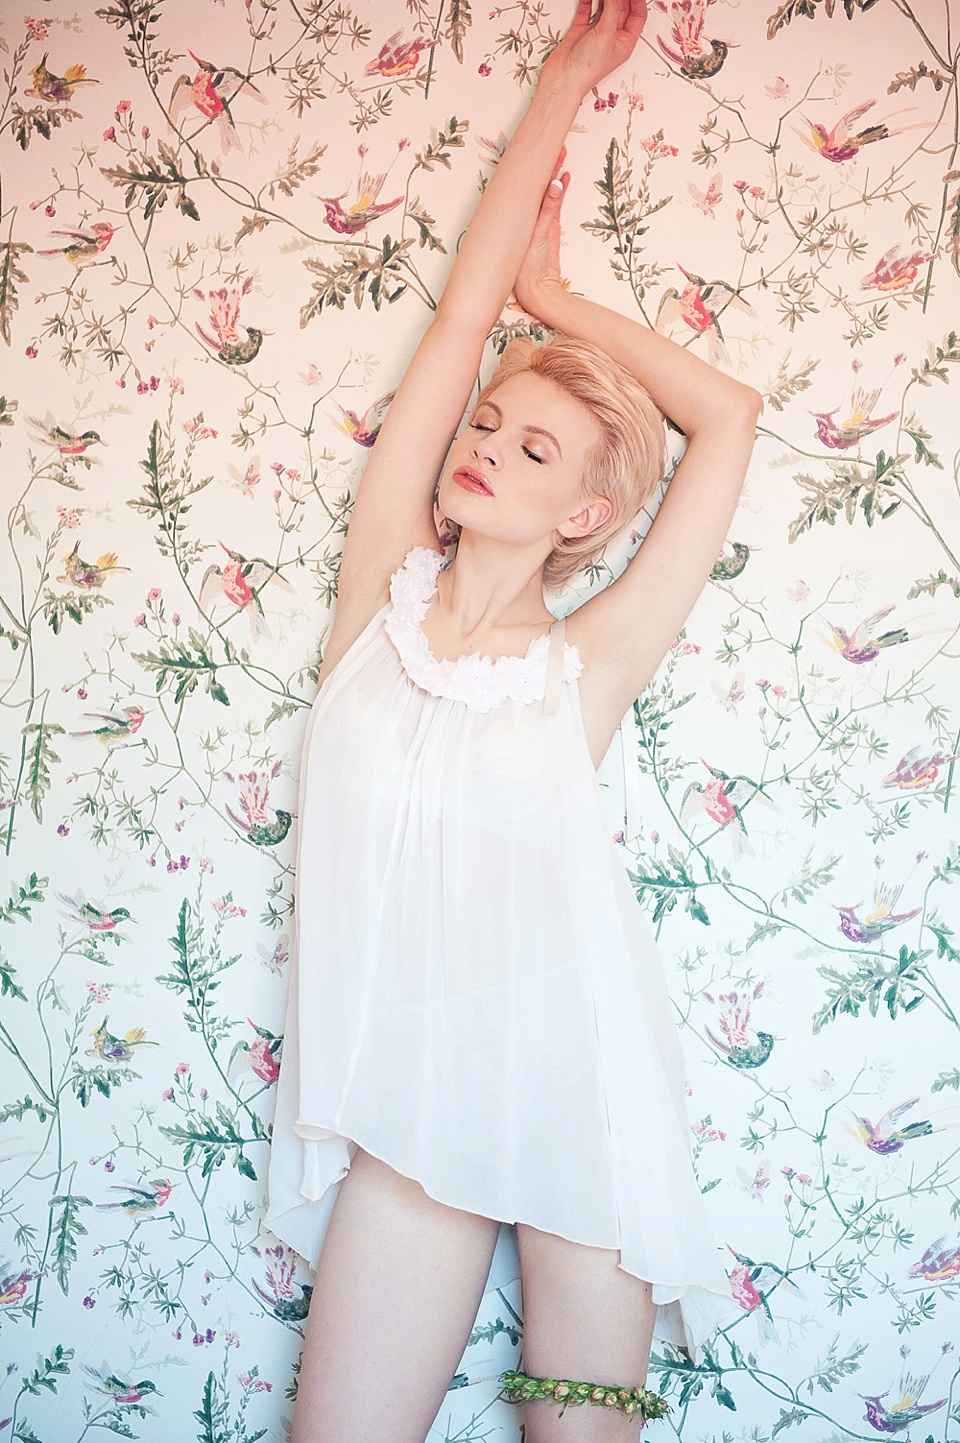 Blonde in beautiful feminine boudoir shoot, makeup by Mariam Jensen, shot at The George in Rye - fine art photography (C) Fiona Kelly Photography